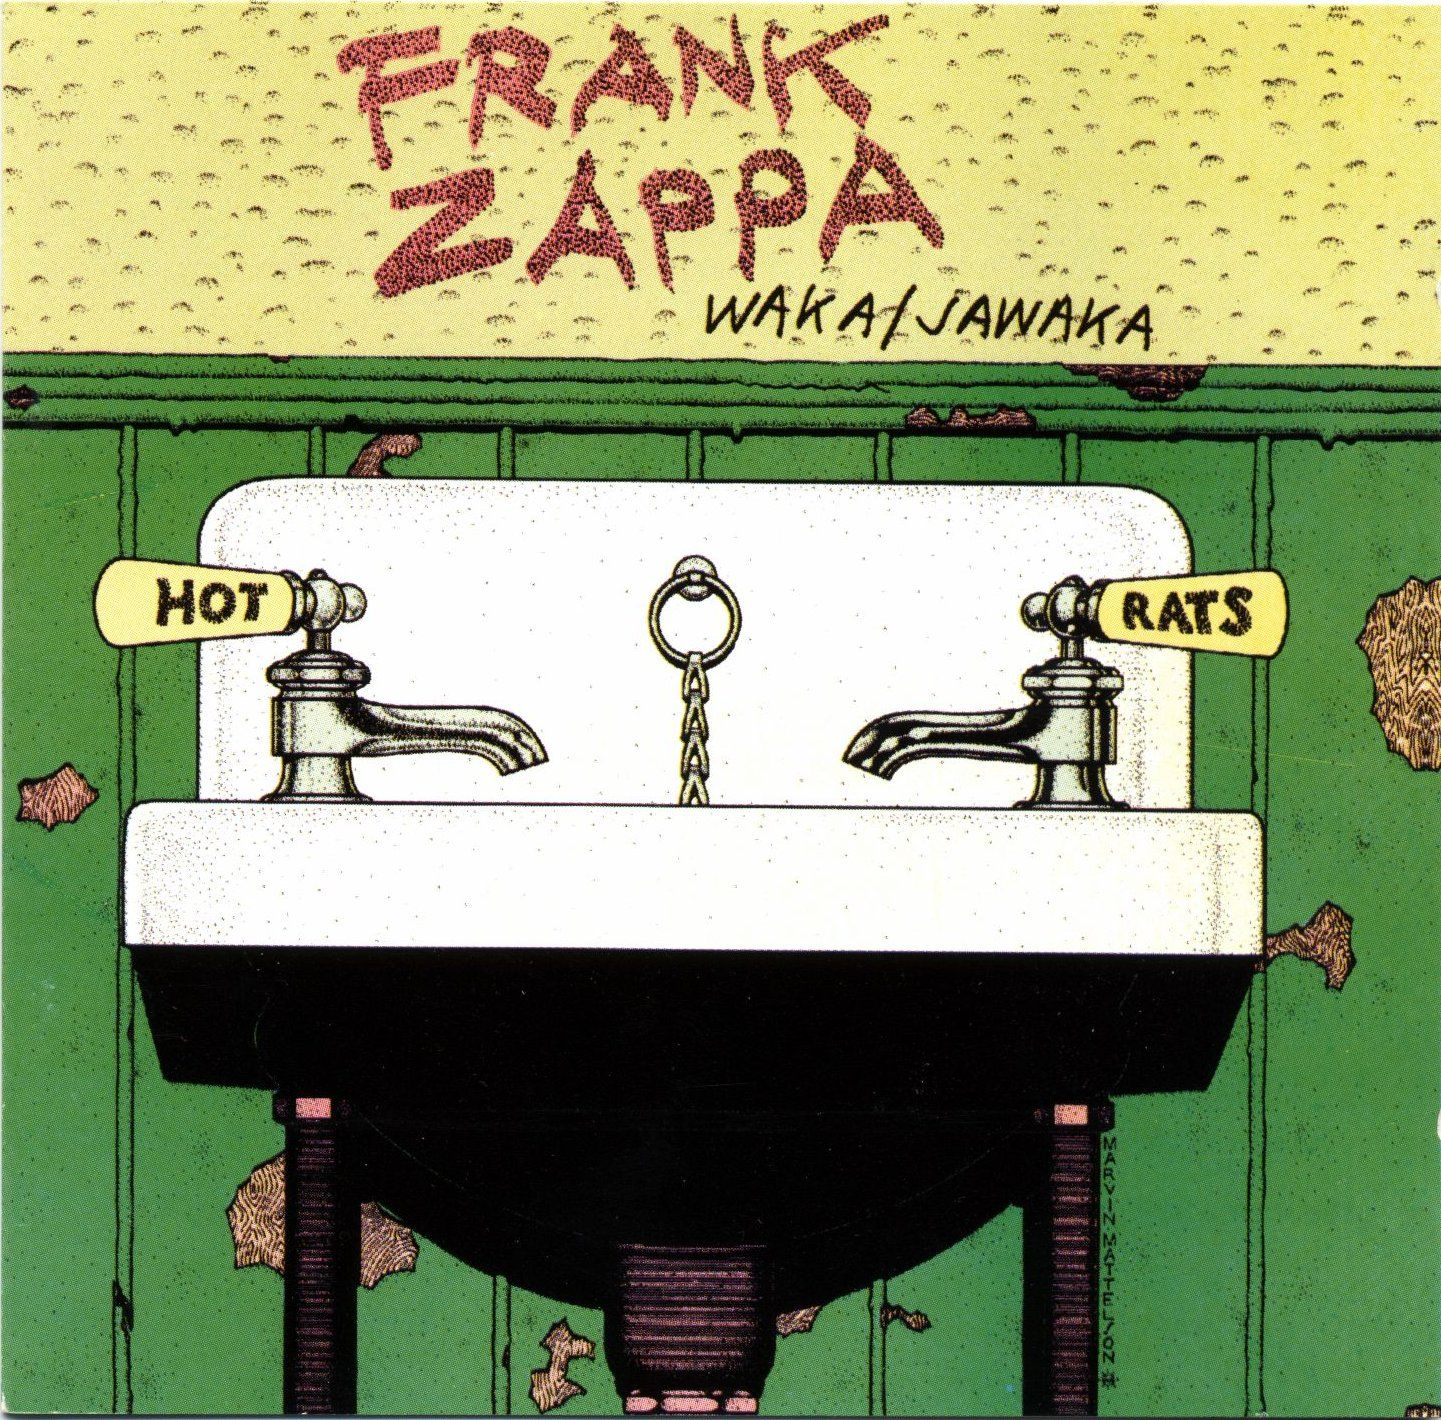 Frank Zappa Album Cover Frank Zappa Zappa Album Cover Art